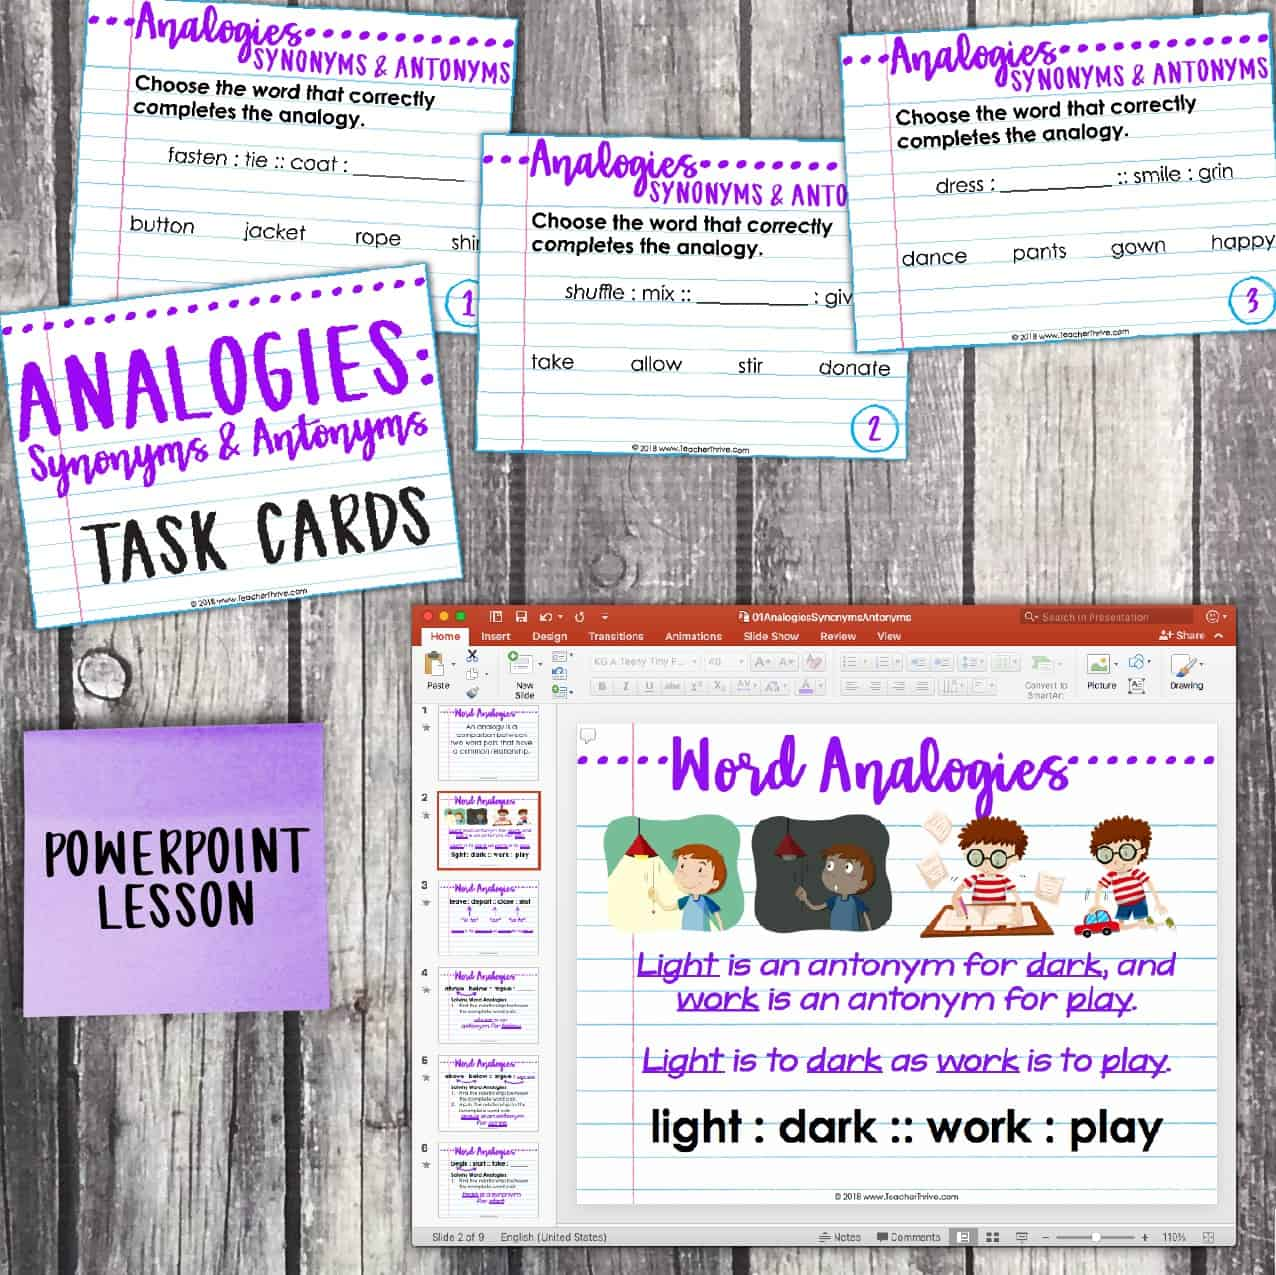 Analogies (Synonyms and Antonyms)